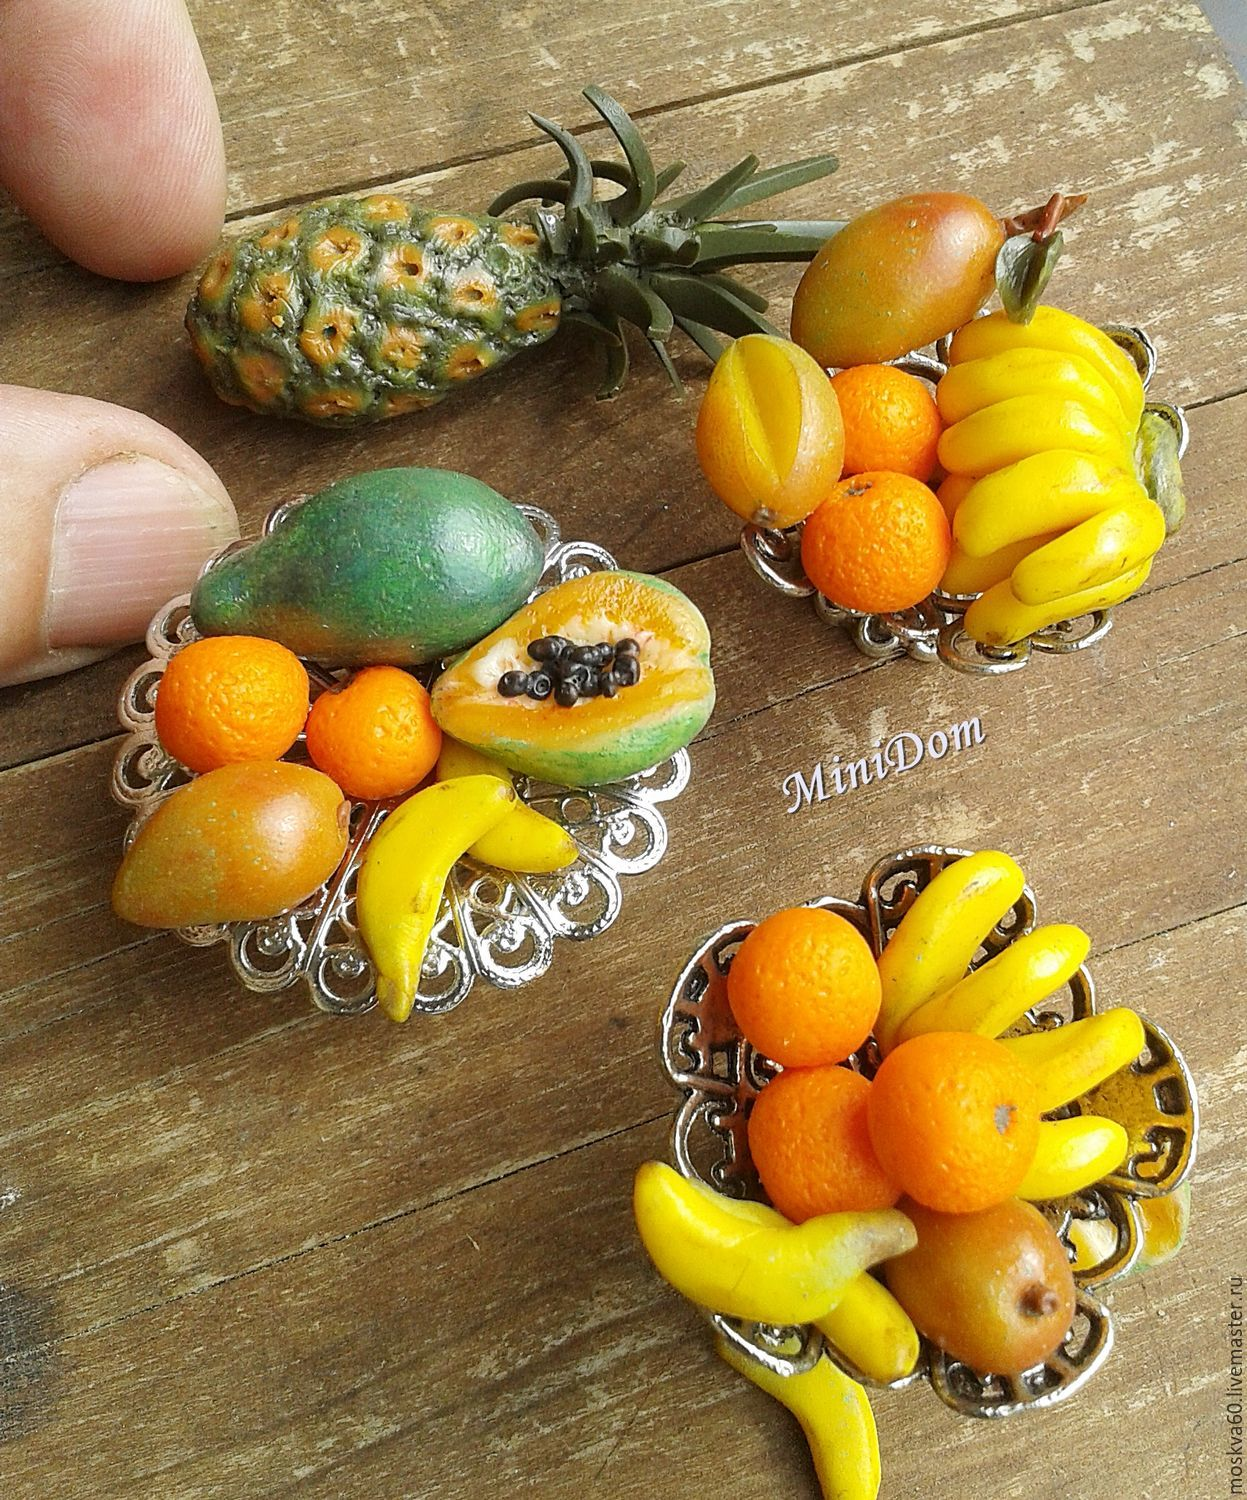 Dollhouse miniature for doll and toy doll house doll house accessories Dollhouse dolls food for dolls exotic fruits pineapple papaya mango scale 1 12 1 6 collectible miniature